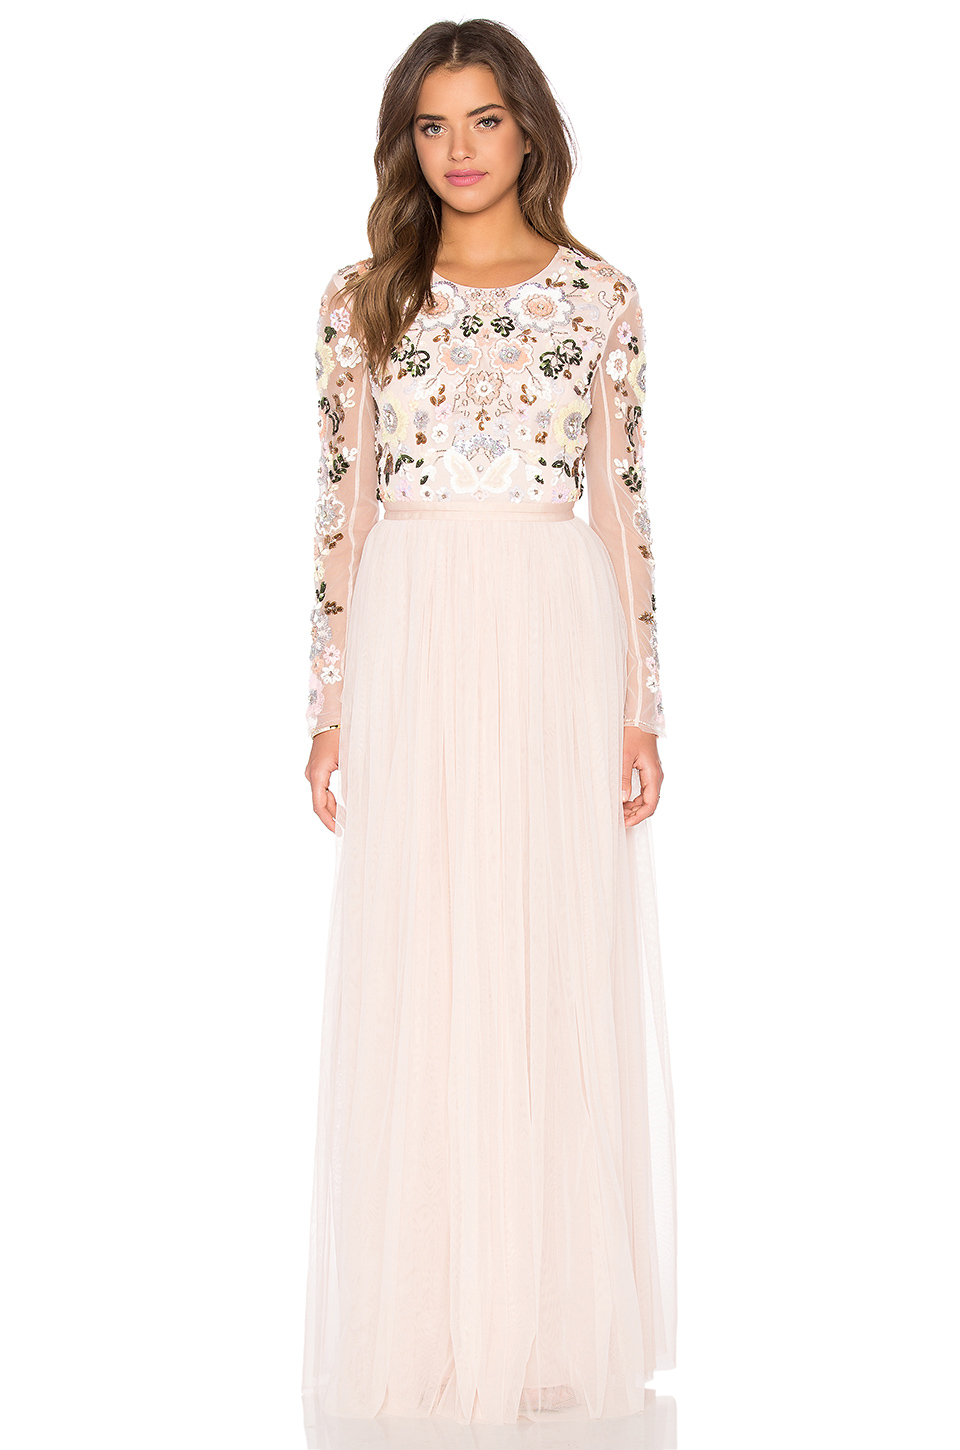 94053b7f0397 Needle & Thread Floral Cluster Embellished Gown in Pink - Lyst